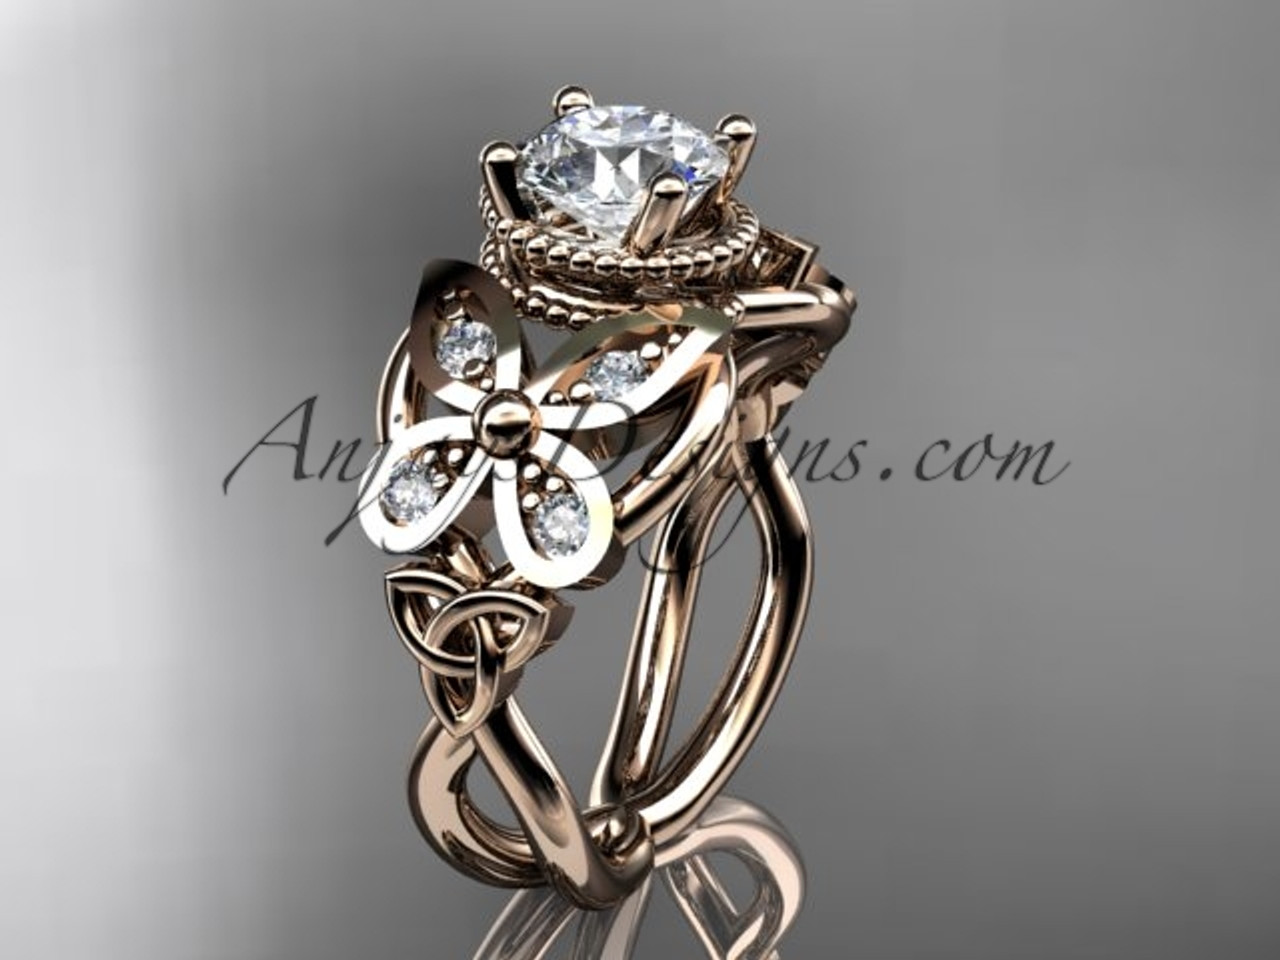 14kt rose gold diamond celtic trinity knot wedding ringbutterfly engagement ring with a - Rose Gold Diamond Wedding Ring